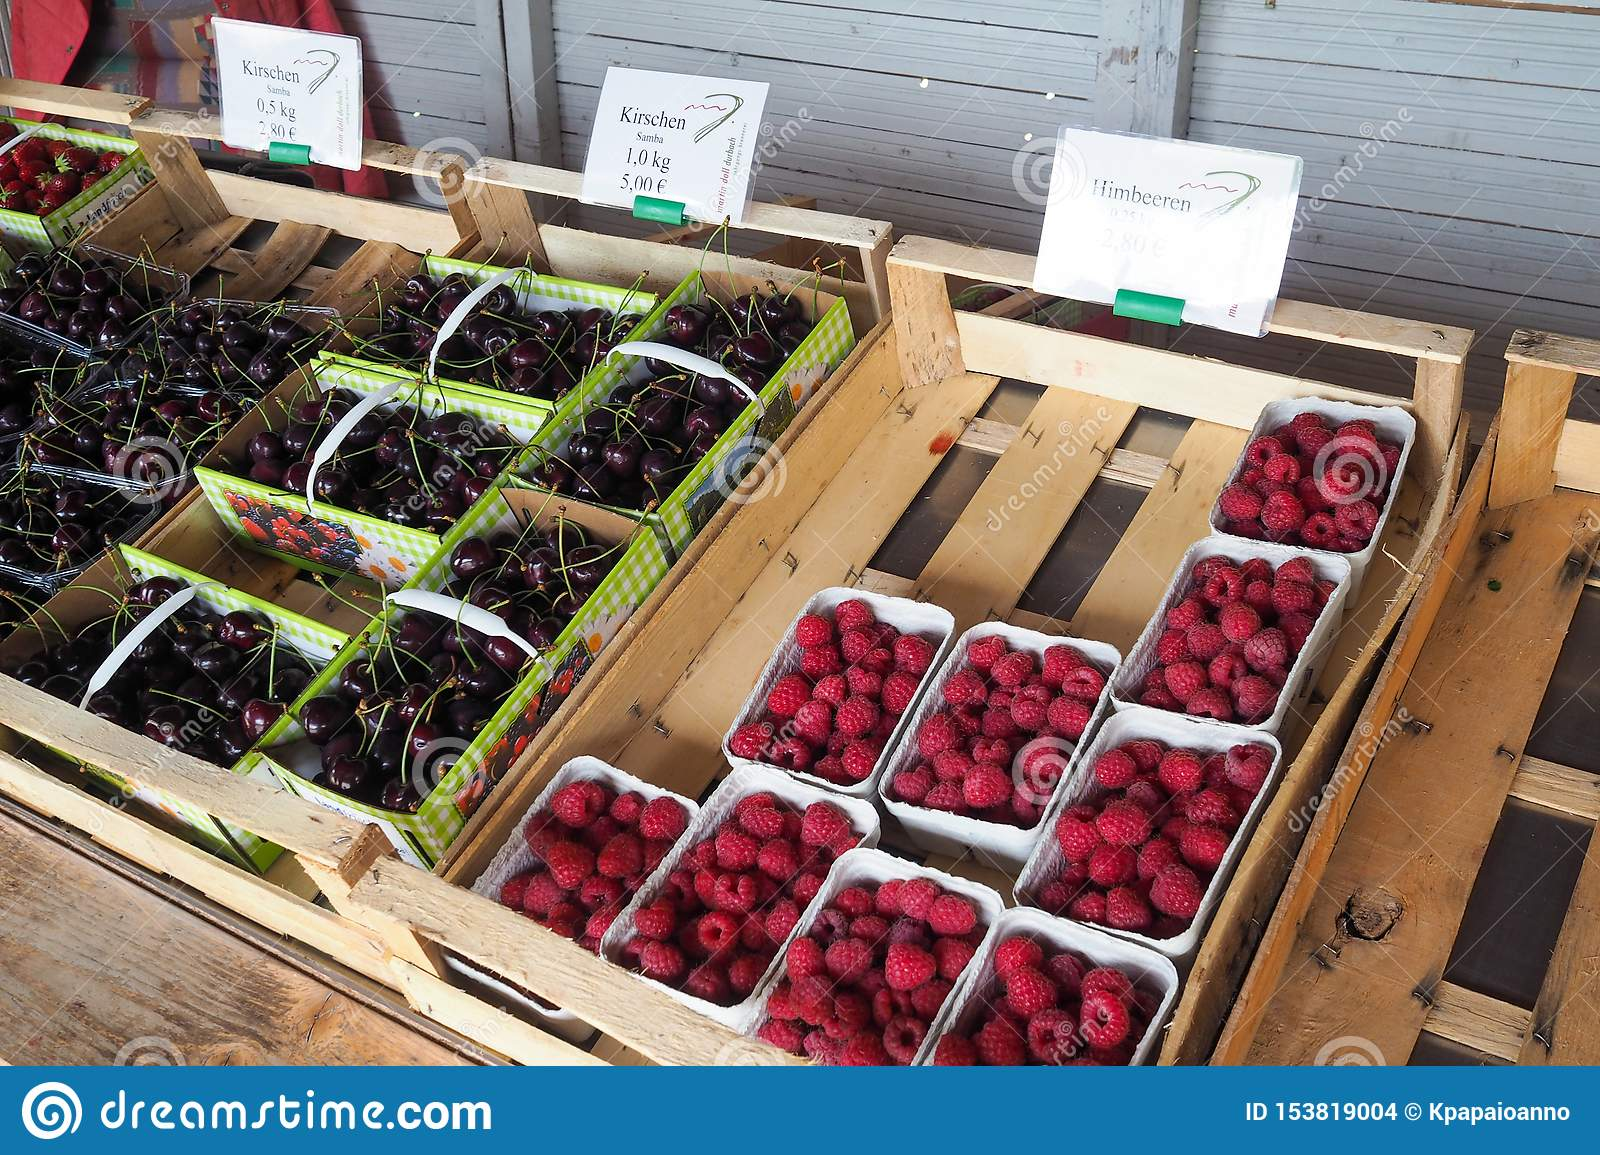 Strawberries And Fruits Sold On The Street In Durbach Offenburg Germany Editorial Stock Image Image Of Dessert Backgrounds 153819004